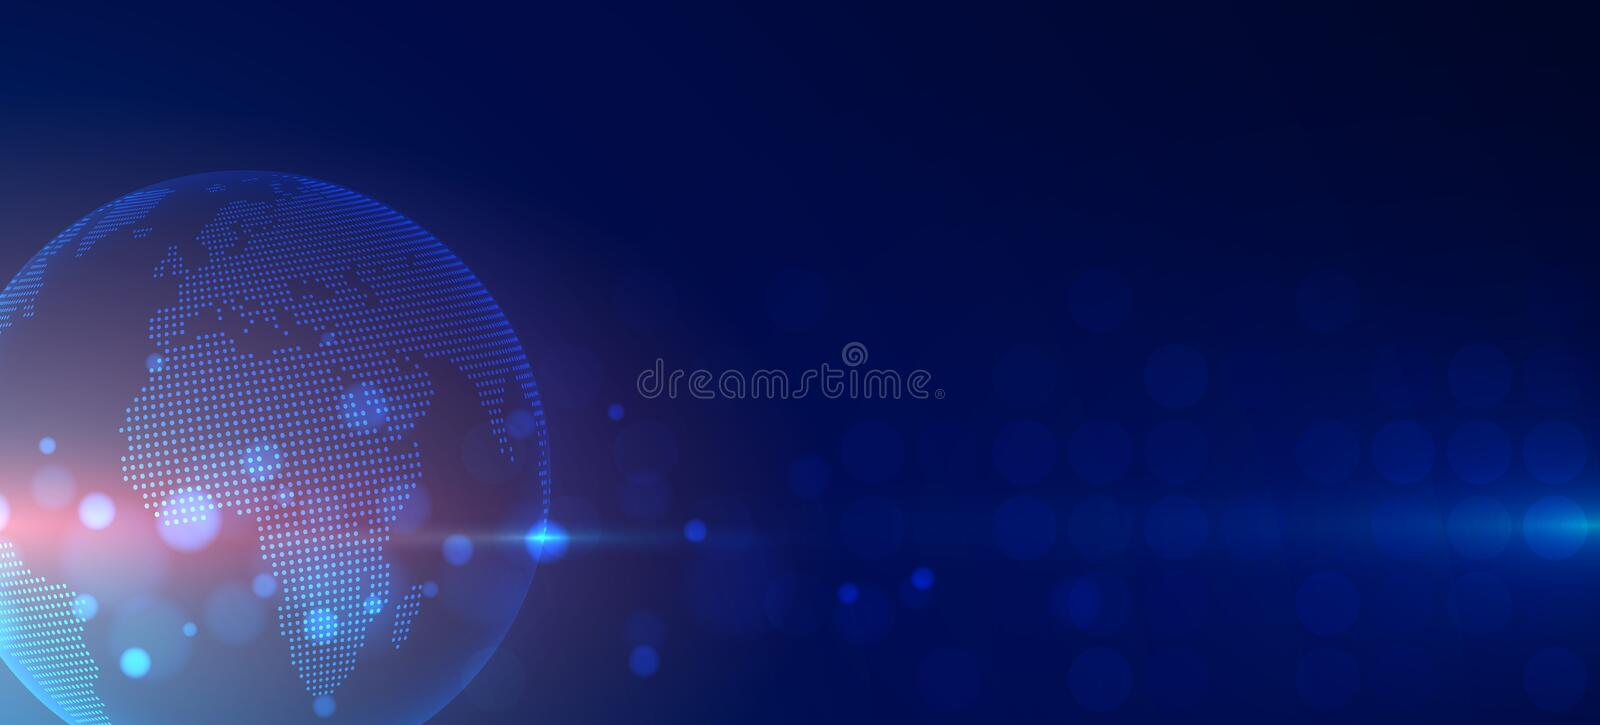 Futuristic technology background Business and development direction. Digital World royalty free illustration